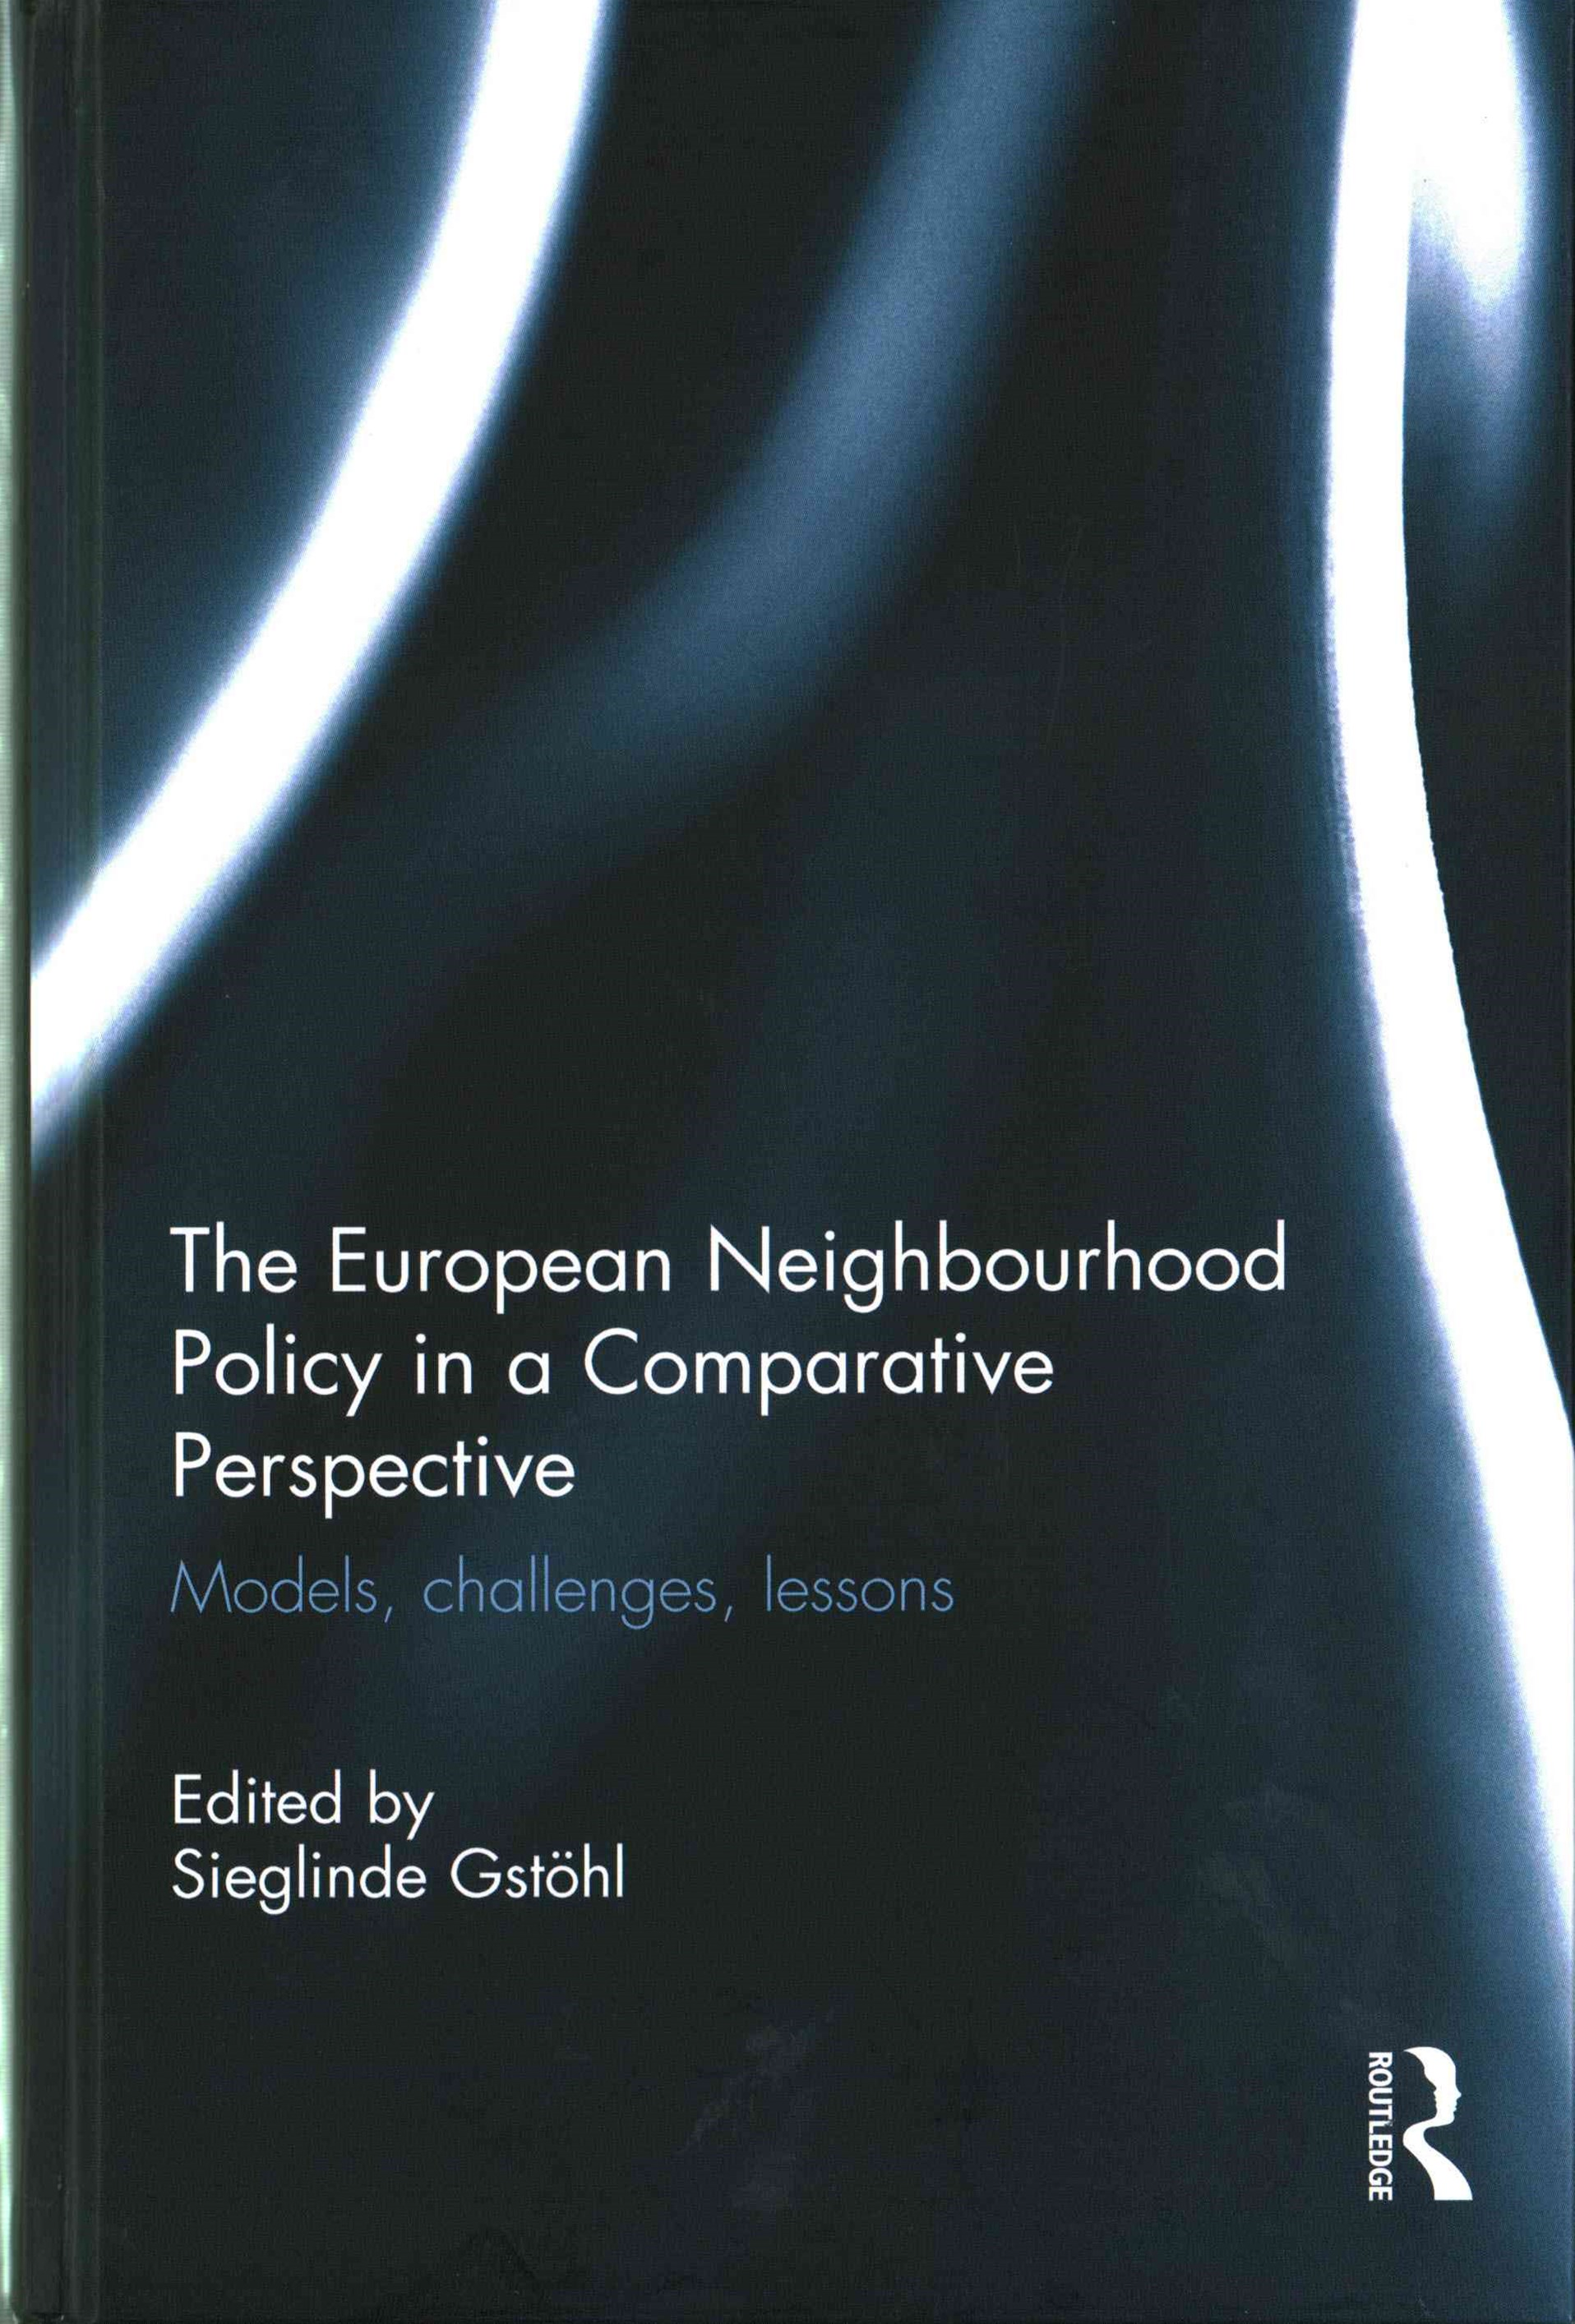 European Neighbourhood Policy in a Comparative Perspective